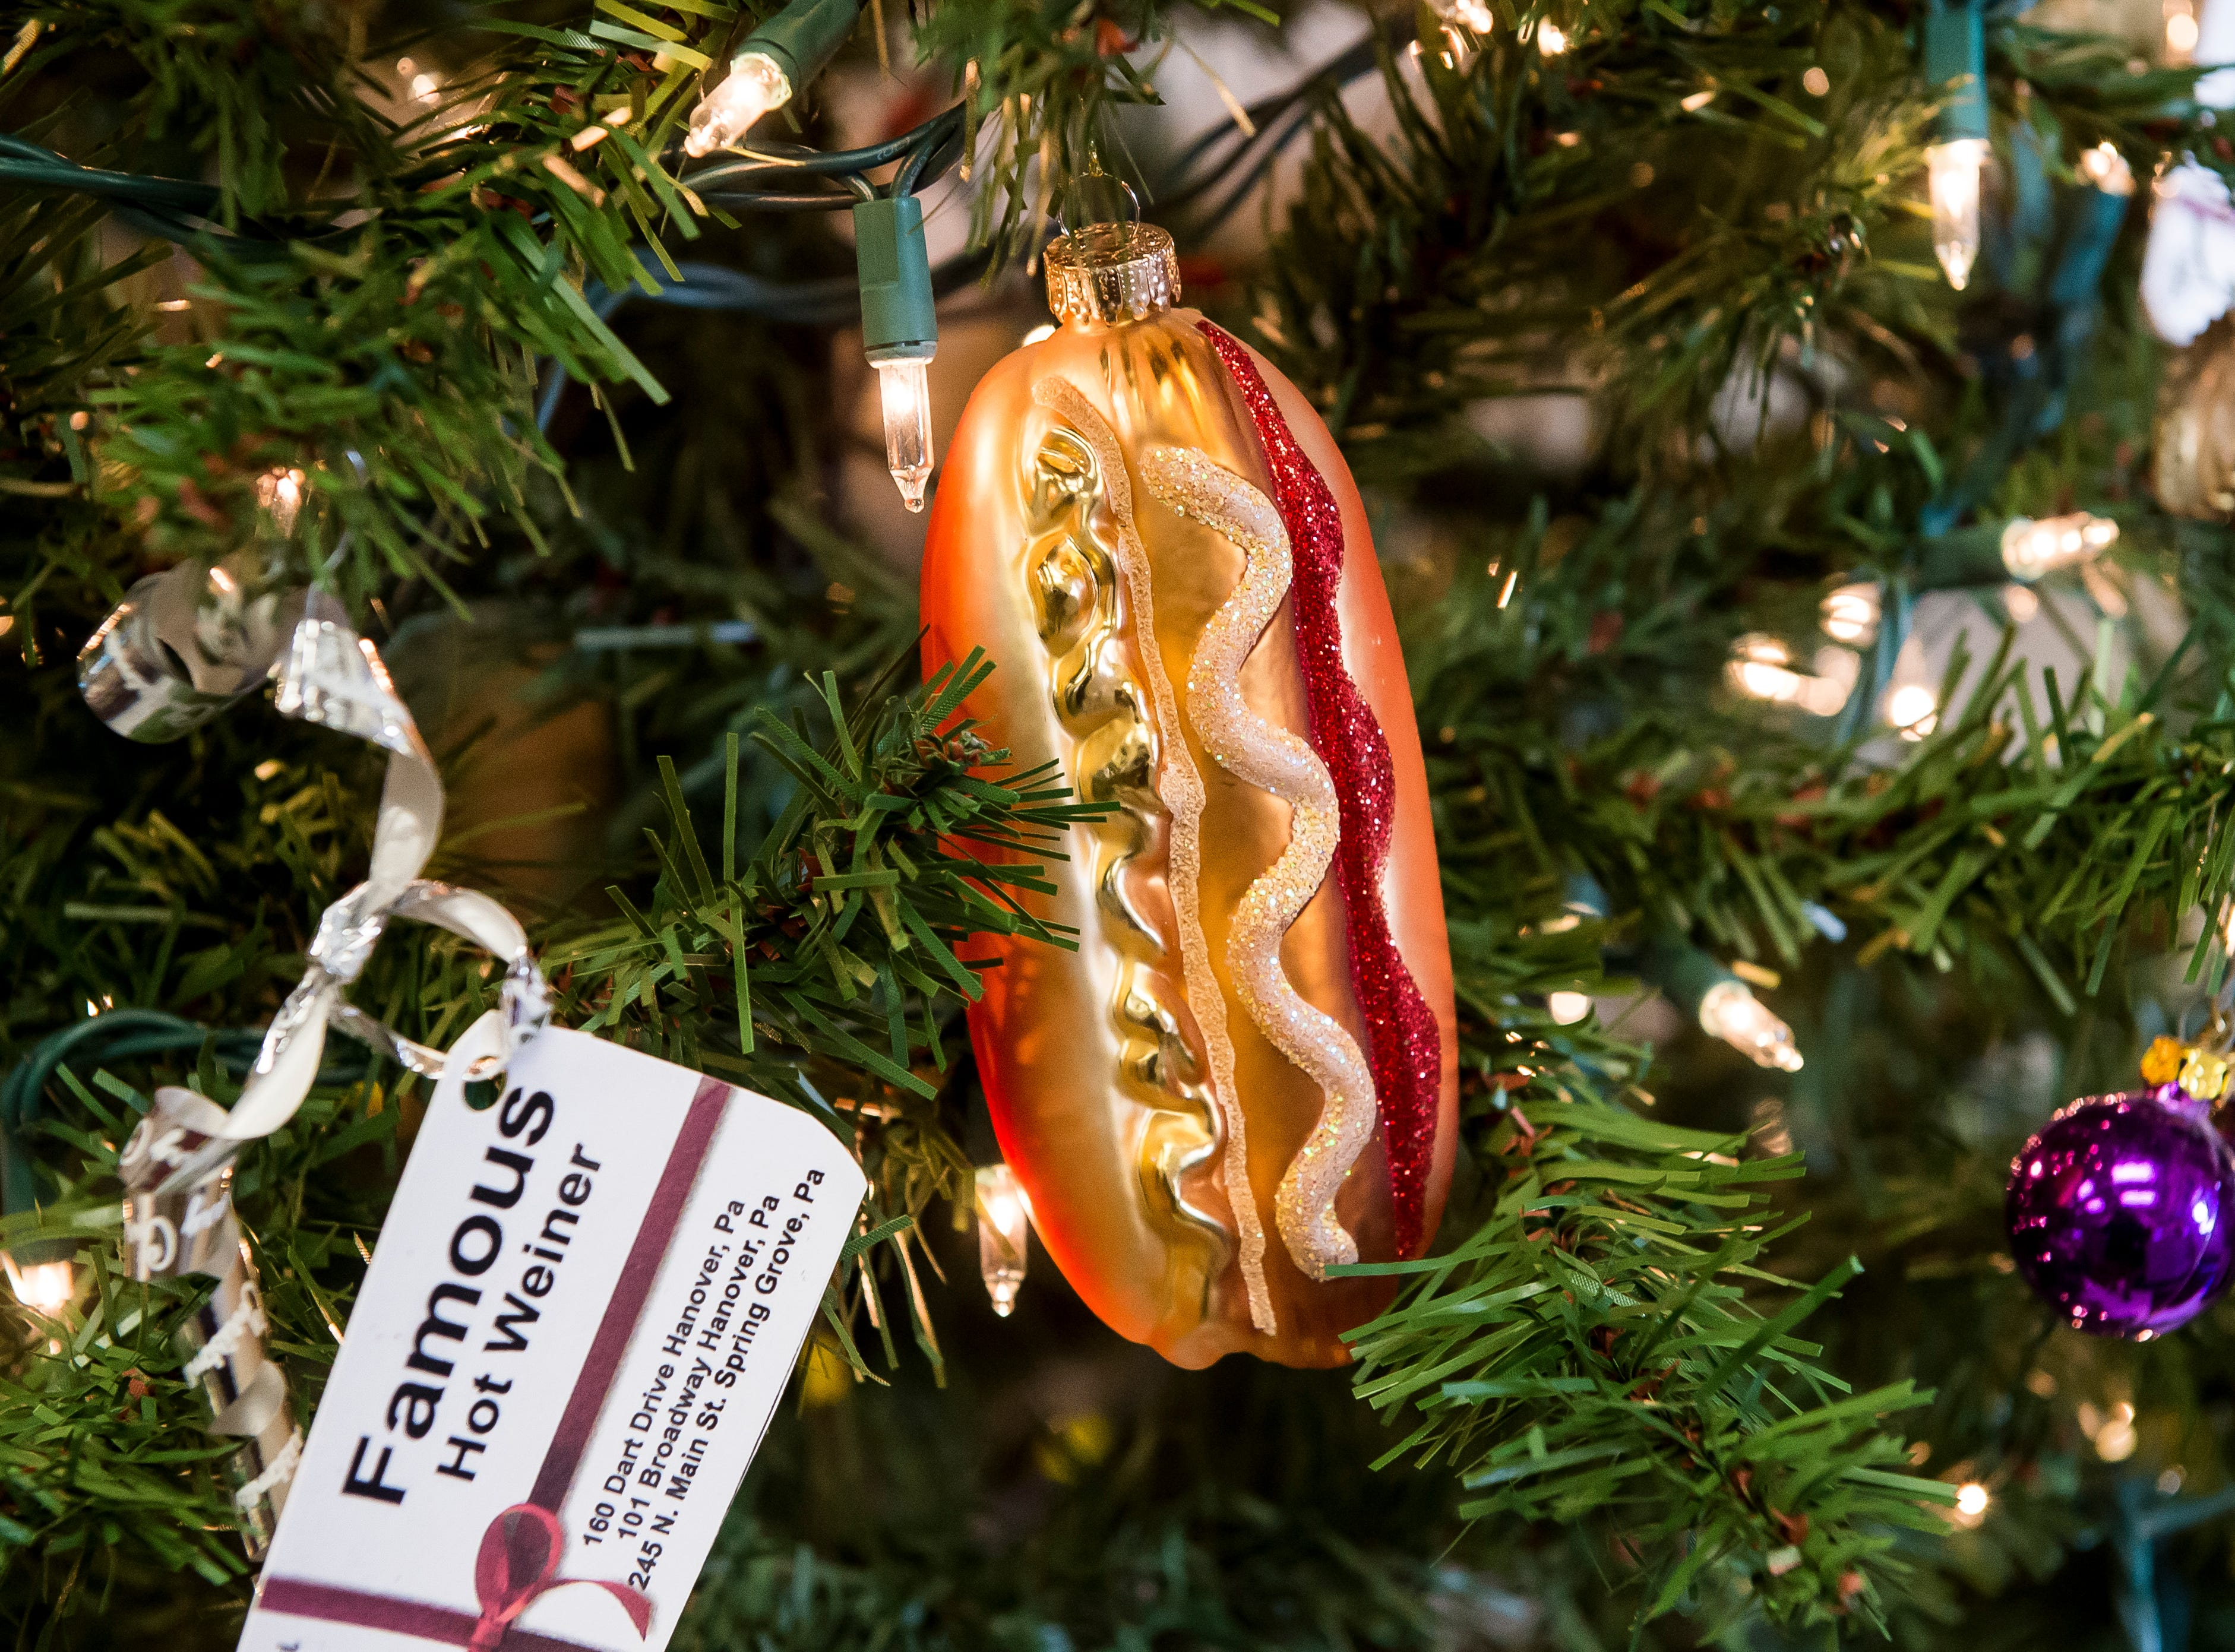 Famous Hot Weiner located at 101 Broadway. Visit mainstreethanover.org for details about Christmas Tree Wars.